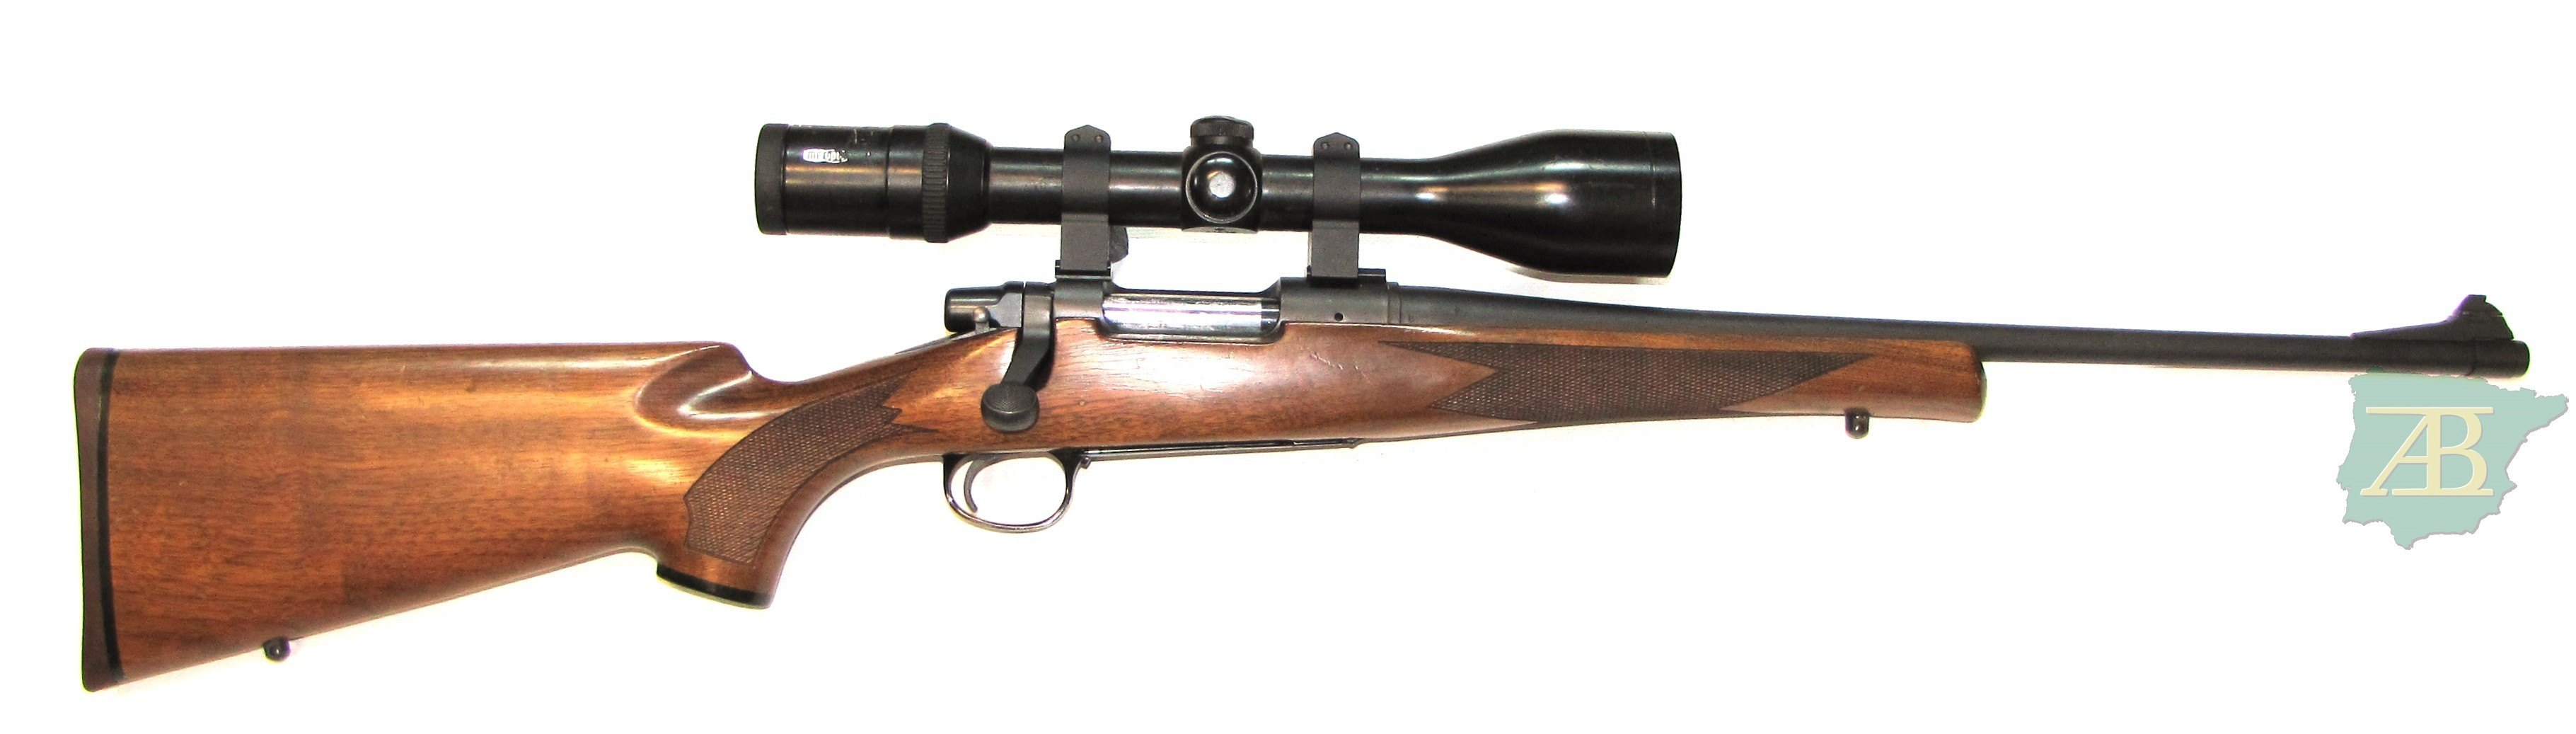 RIFLE DE CERROJO DE CAZA REMINGTON .243 WIN Ref. 4869